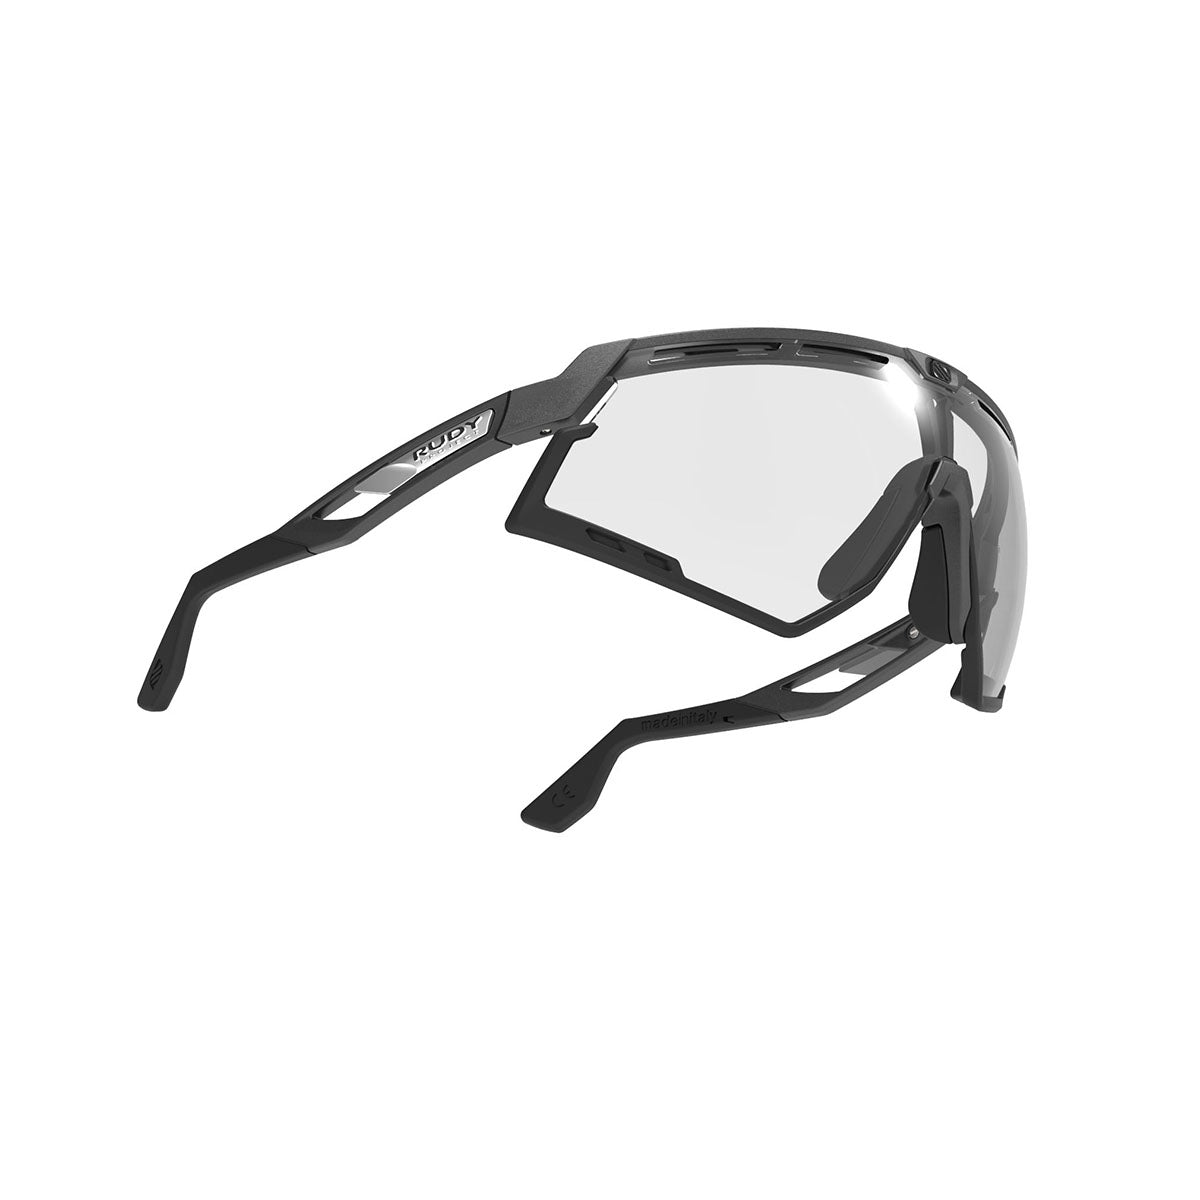 Rudy Project - Defender - frame color: Pyombo Matte - lens color: ImpactX-2 Photochromic Clear to Black - Bumper Color: Black - photo angle: Bottom Front Angle Variant Hover Image